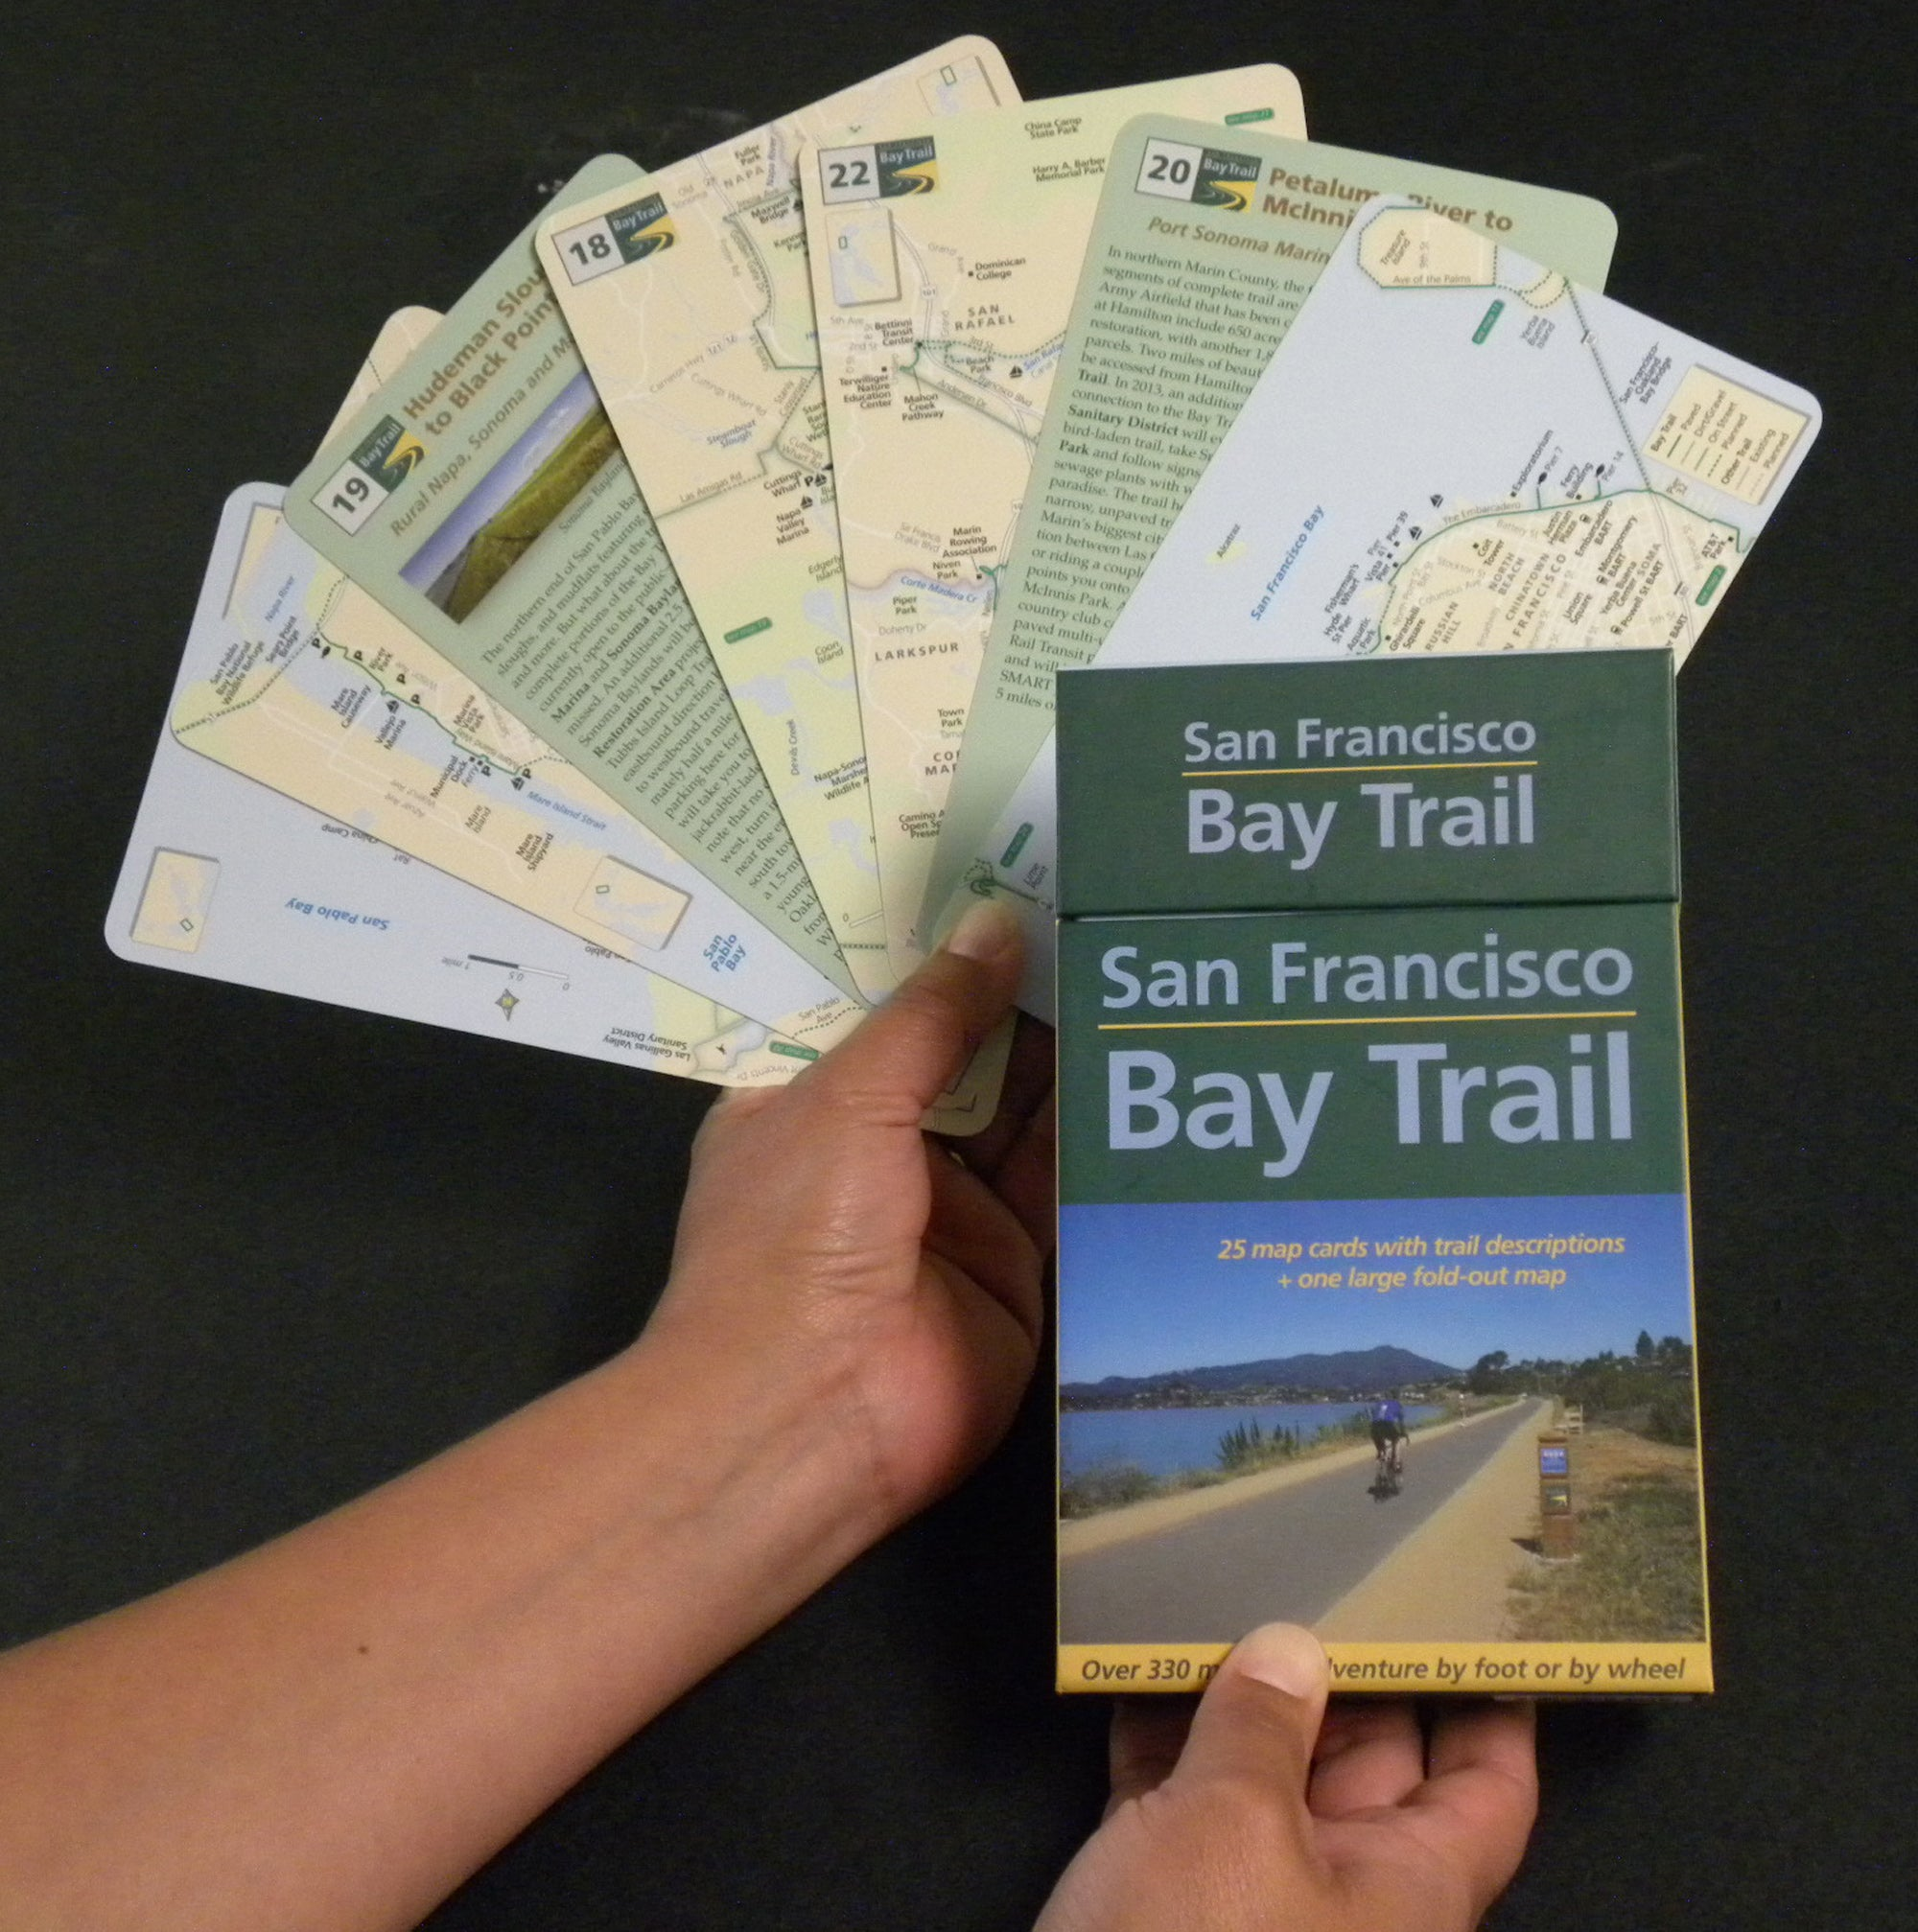 New San Francisco Bay Trail Maps Now Available   News ... San Francisco Bay Trail Map on lake del valle trail map, santa cruz mountains trail map, joaquin miller park trail map, upper tampa bay trail map, lake lopez campsite map, marin county trail map, liberty state park trail map, eel river trail map, torrey pines state reserve trail map, hollywood trail map, ventura river trail map, monterey bay trail map, united states trail map, three creek lake oregon map, south lake tahoe trail map, china camp state park trail map, la jolla trail map, wissahickon valley park trail map, mokelumne coast to crest trail map, bay bridge bike trail map,